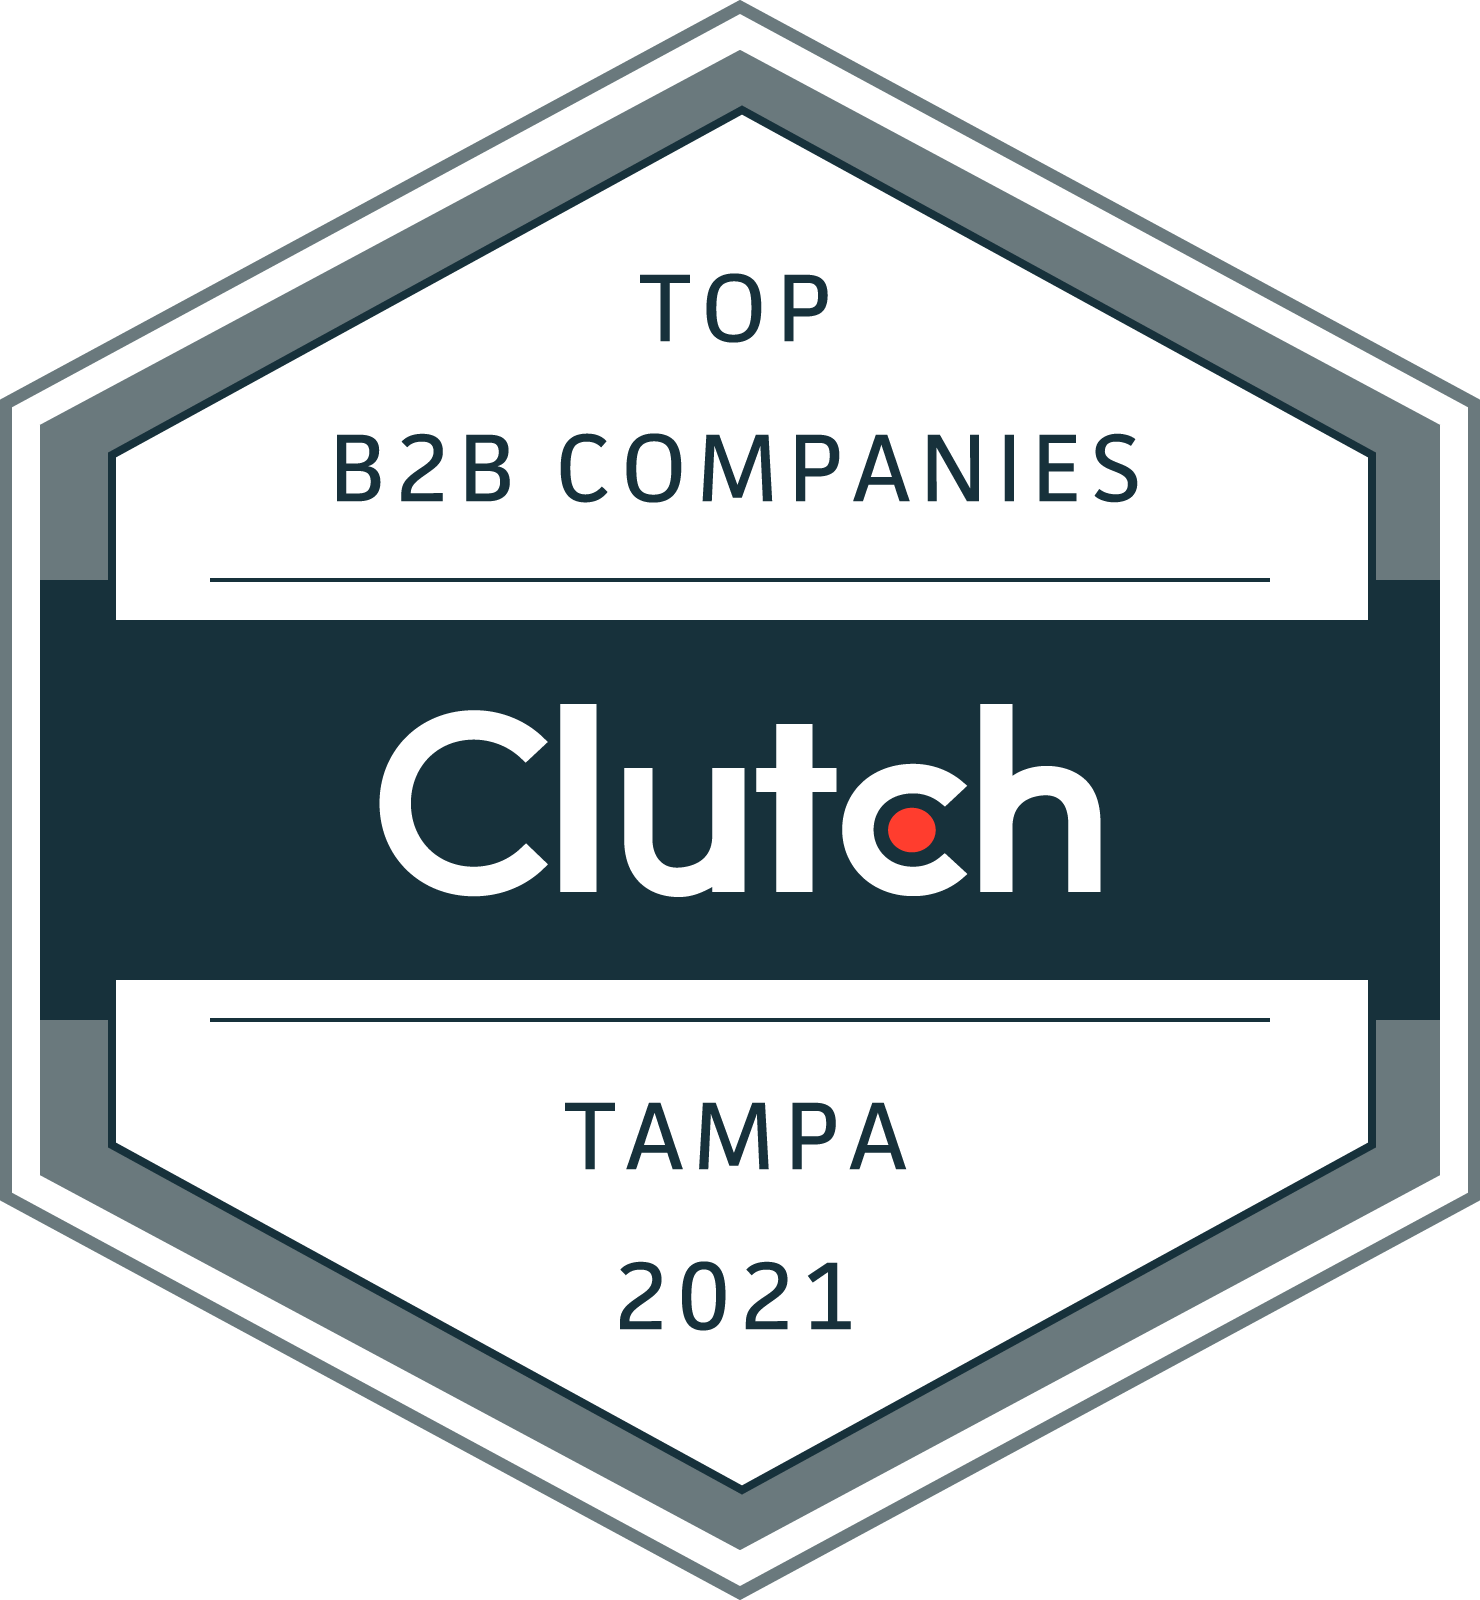 Clutch badge for Tampa's top B2B firms